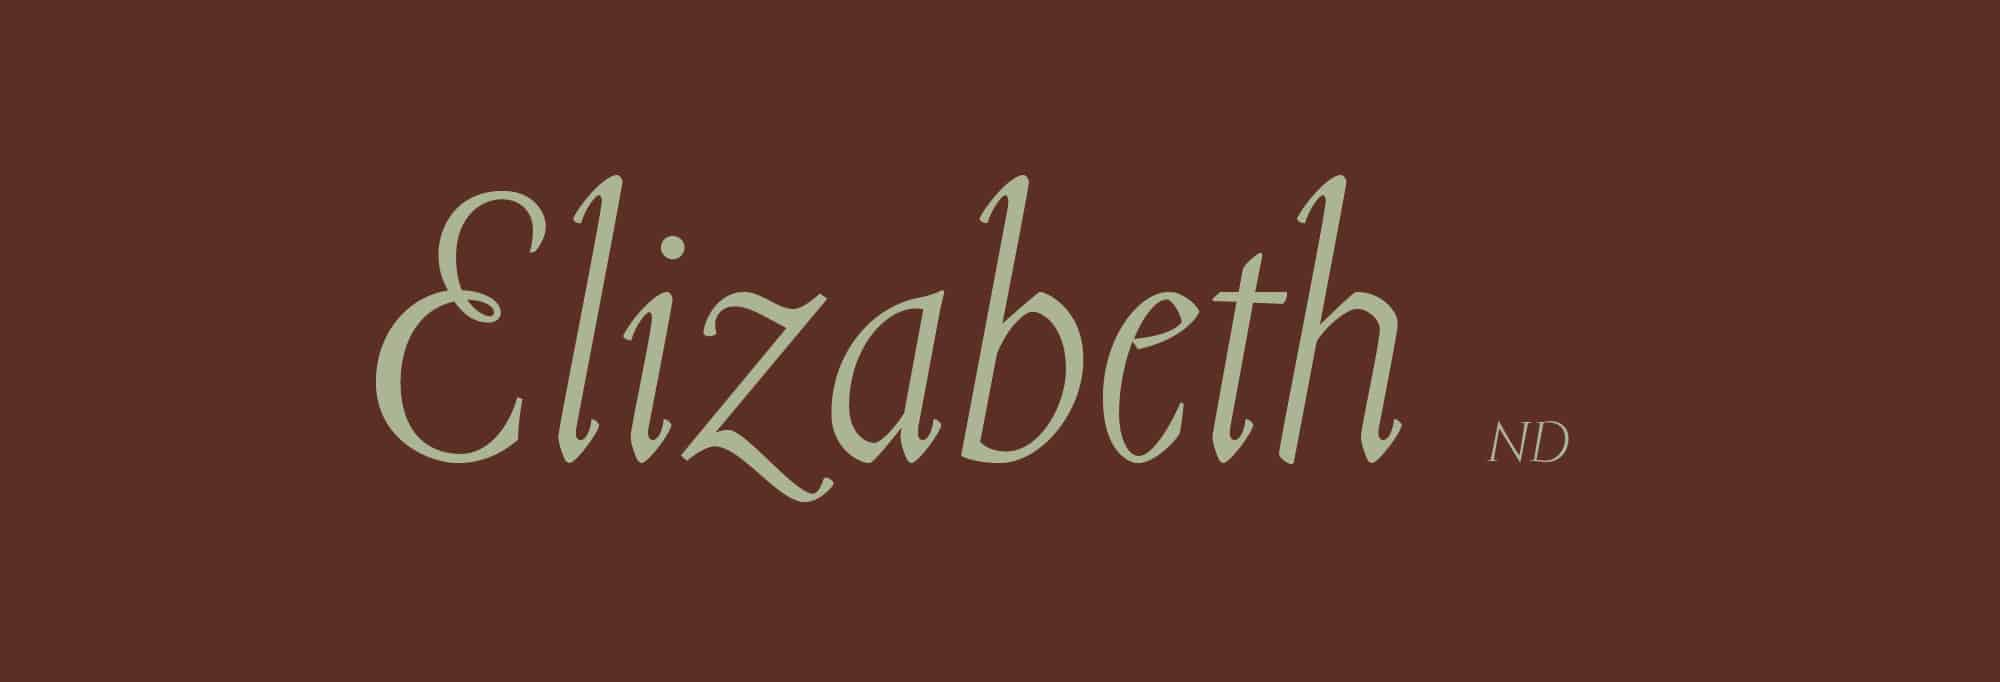 CTV_Elizabeth-ND_bauertypes_01